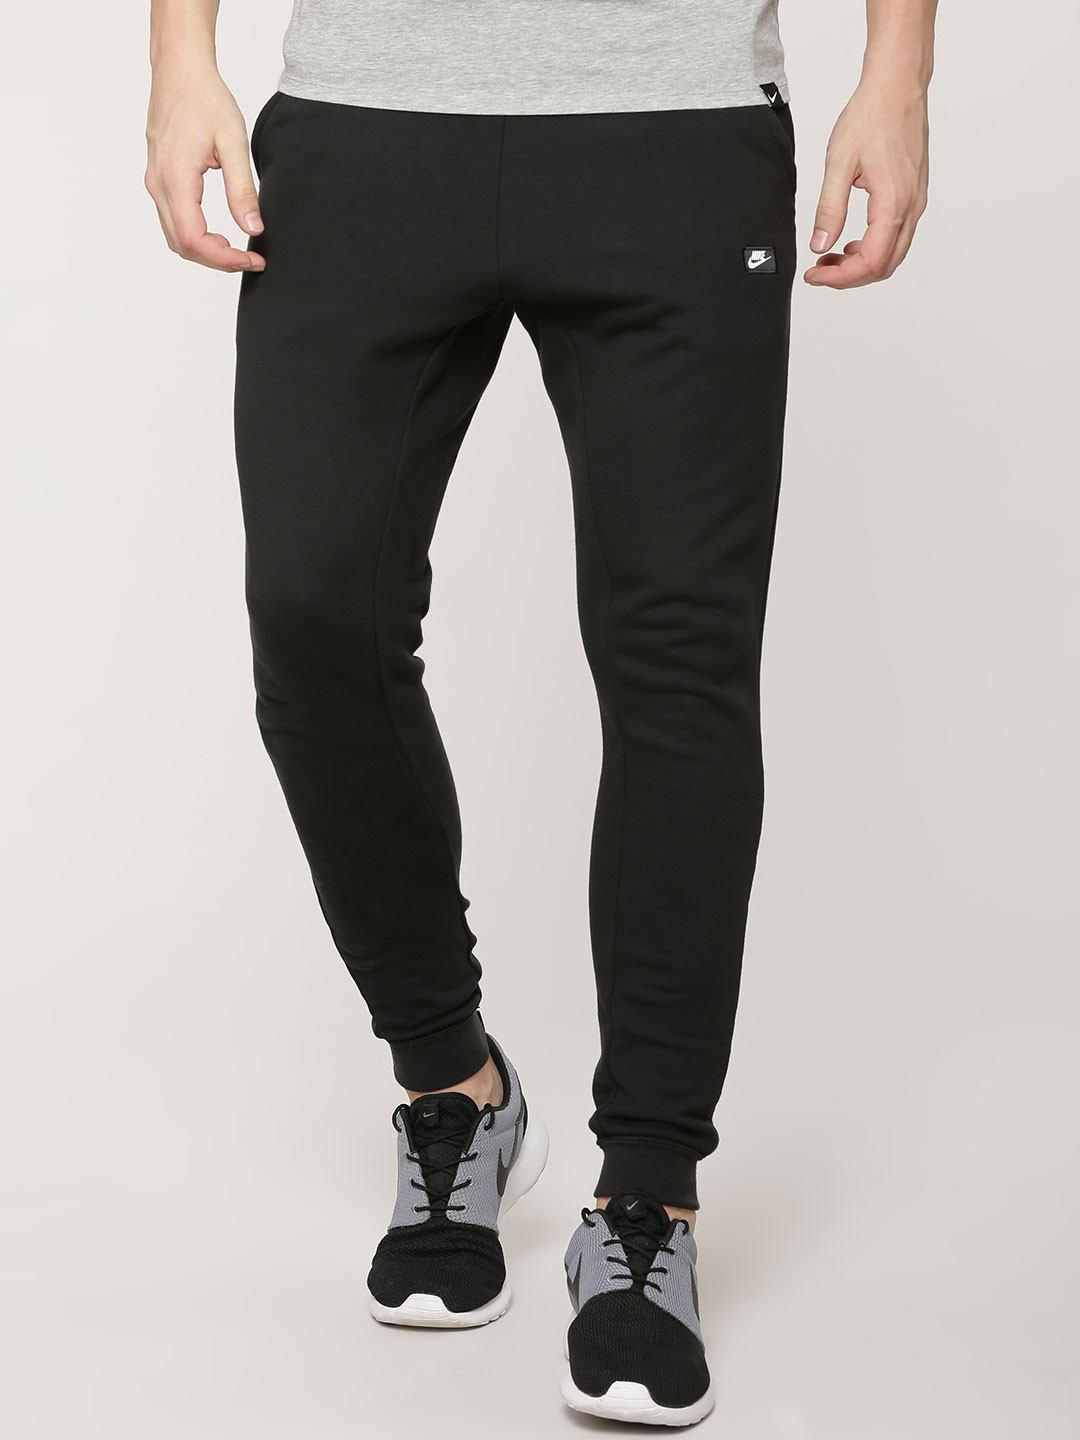 Buy jogger online in india at seebot.ga Choose from huge range of mens joggers, track pants, jogger pants collection online starting at Rs Be the trendsetter with jogger pants the perfect blend of comfort and style. Free Shipping, Easy Returns & COD options available!